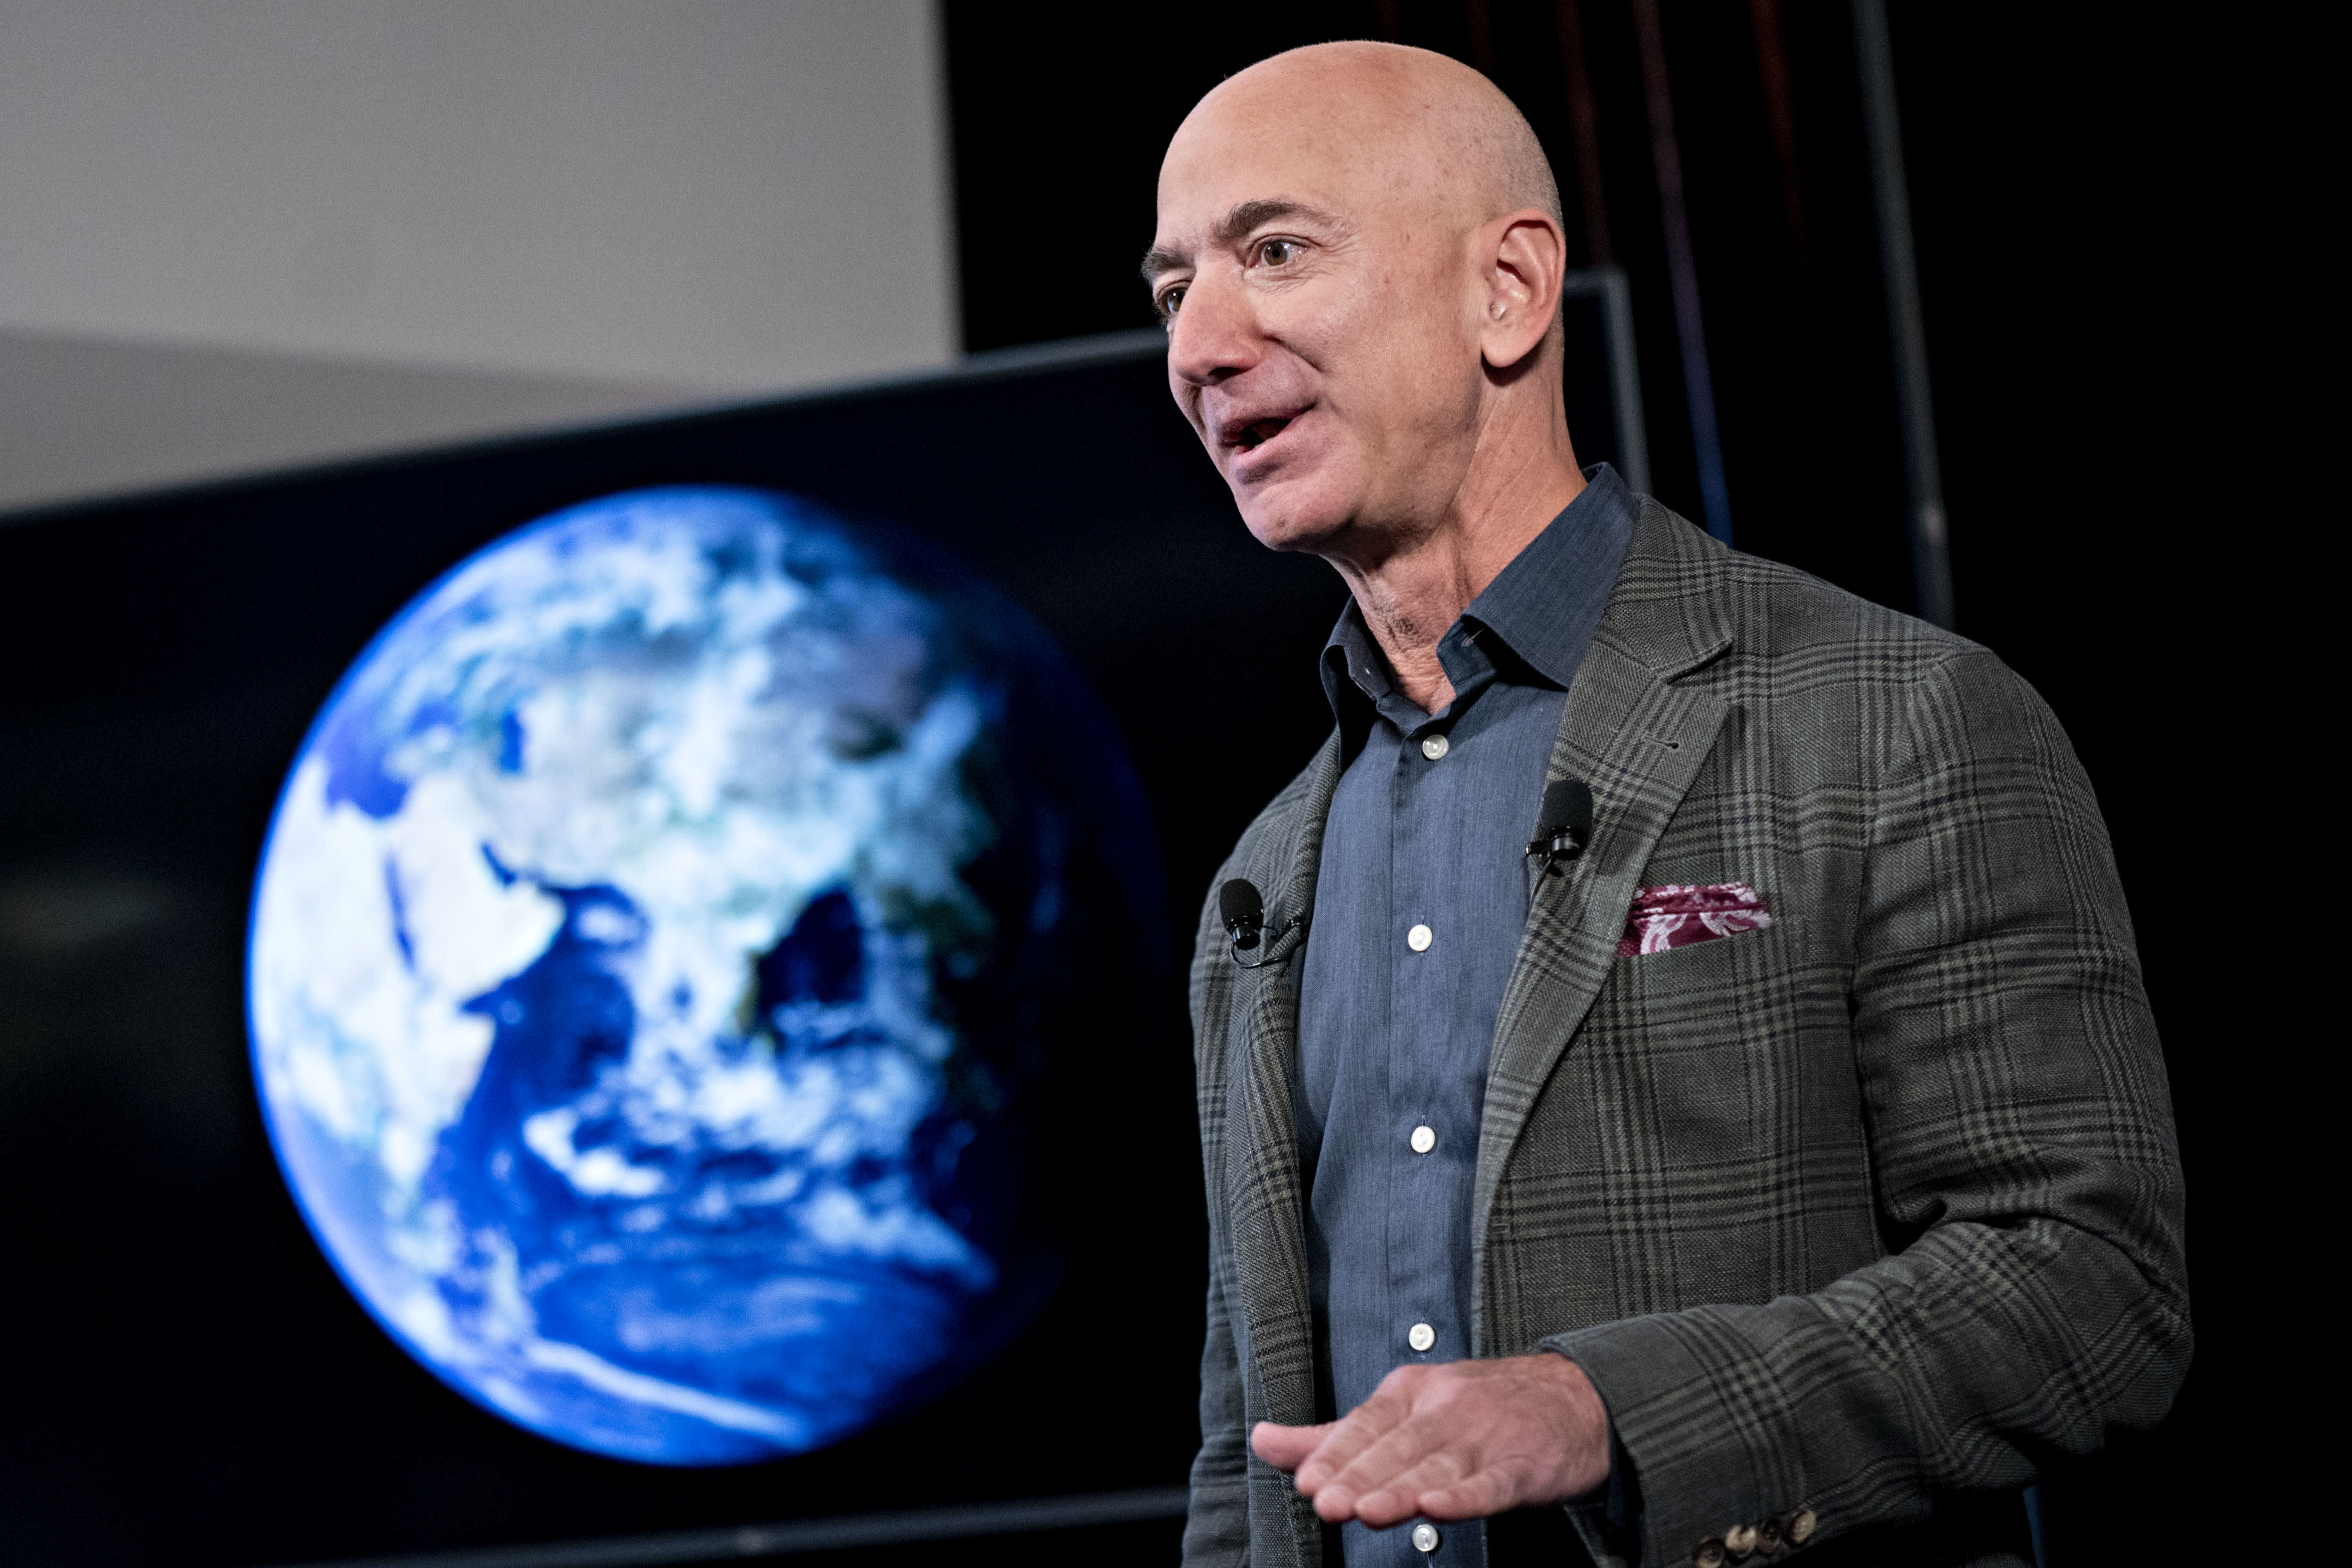 Jeff Bezos visited the new headquarters of Relativity Space, the 3D-printing rocket builder